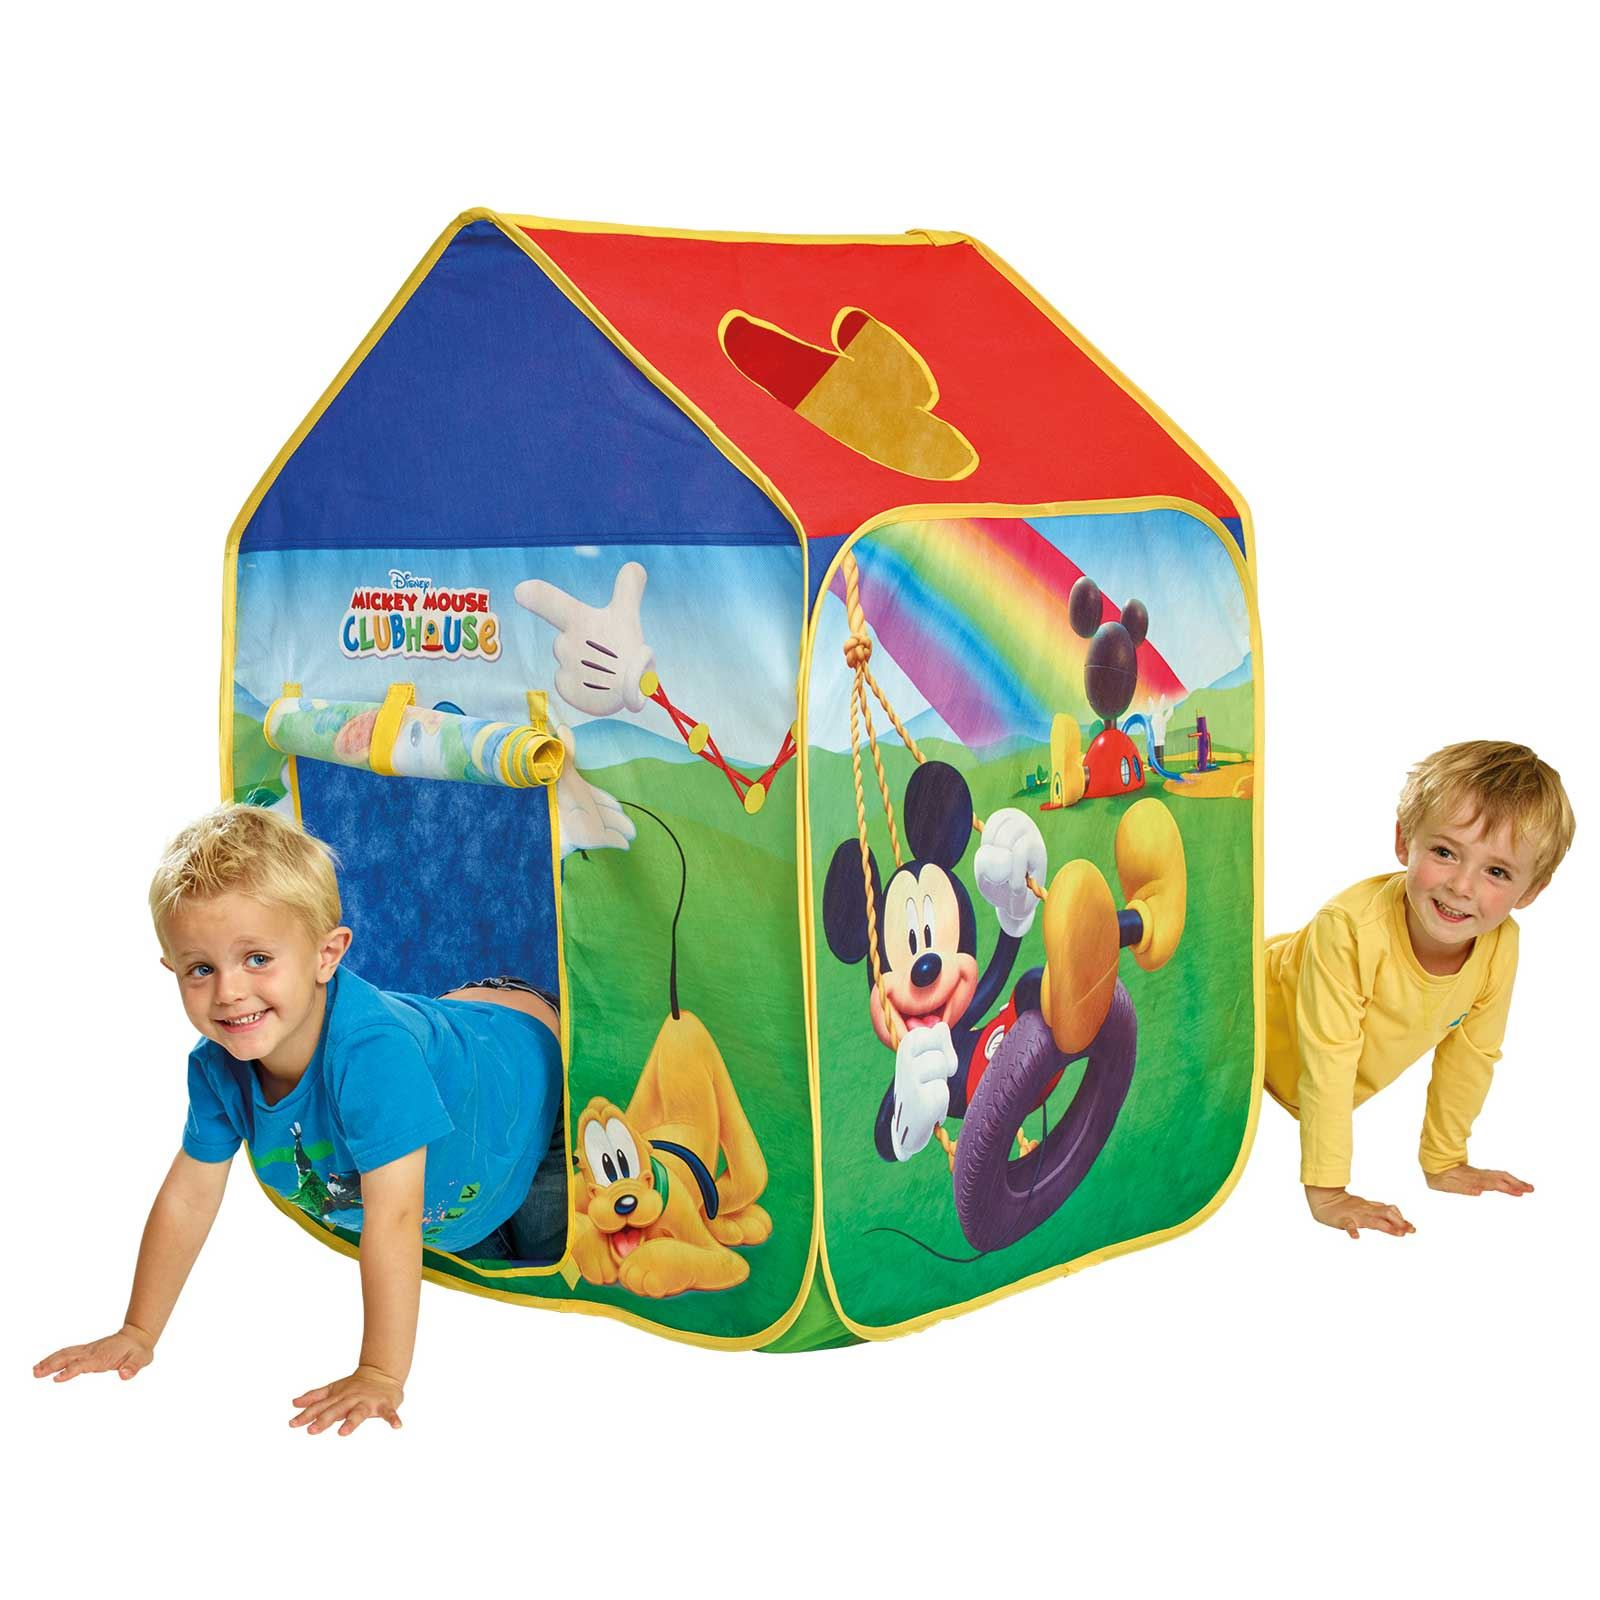 CHILDRENS-CHARACTER-POP-UP-PLAY-TENTS-WENDY-HOUSES-  sc 1 st  eBay : buzz lightyear play tent - memphite.com